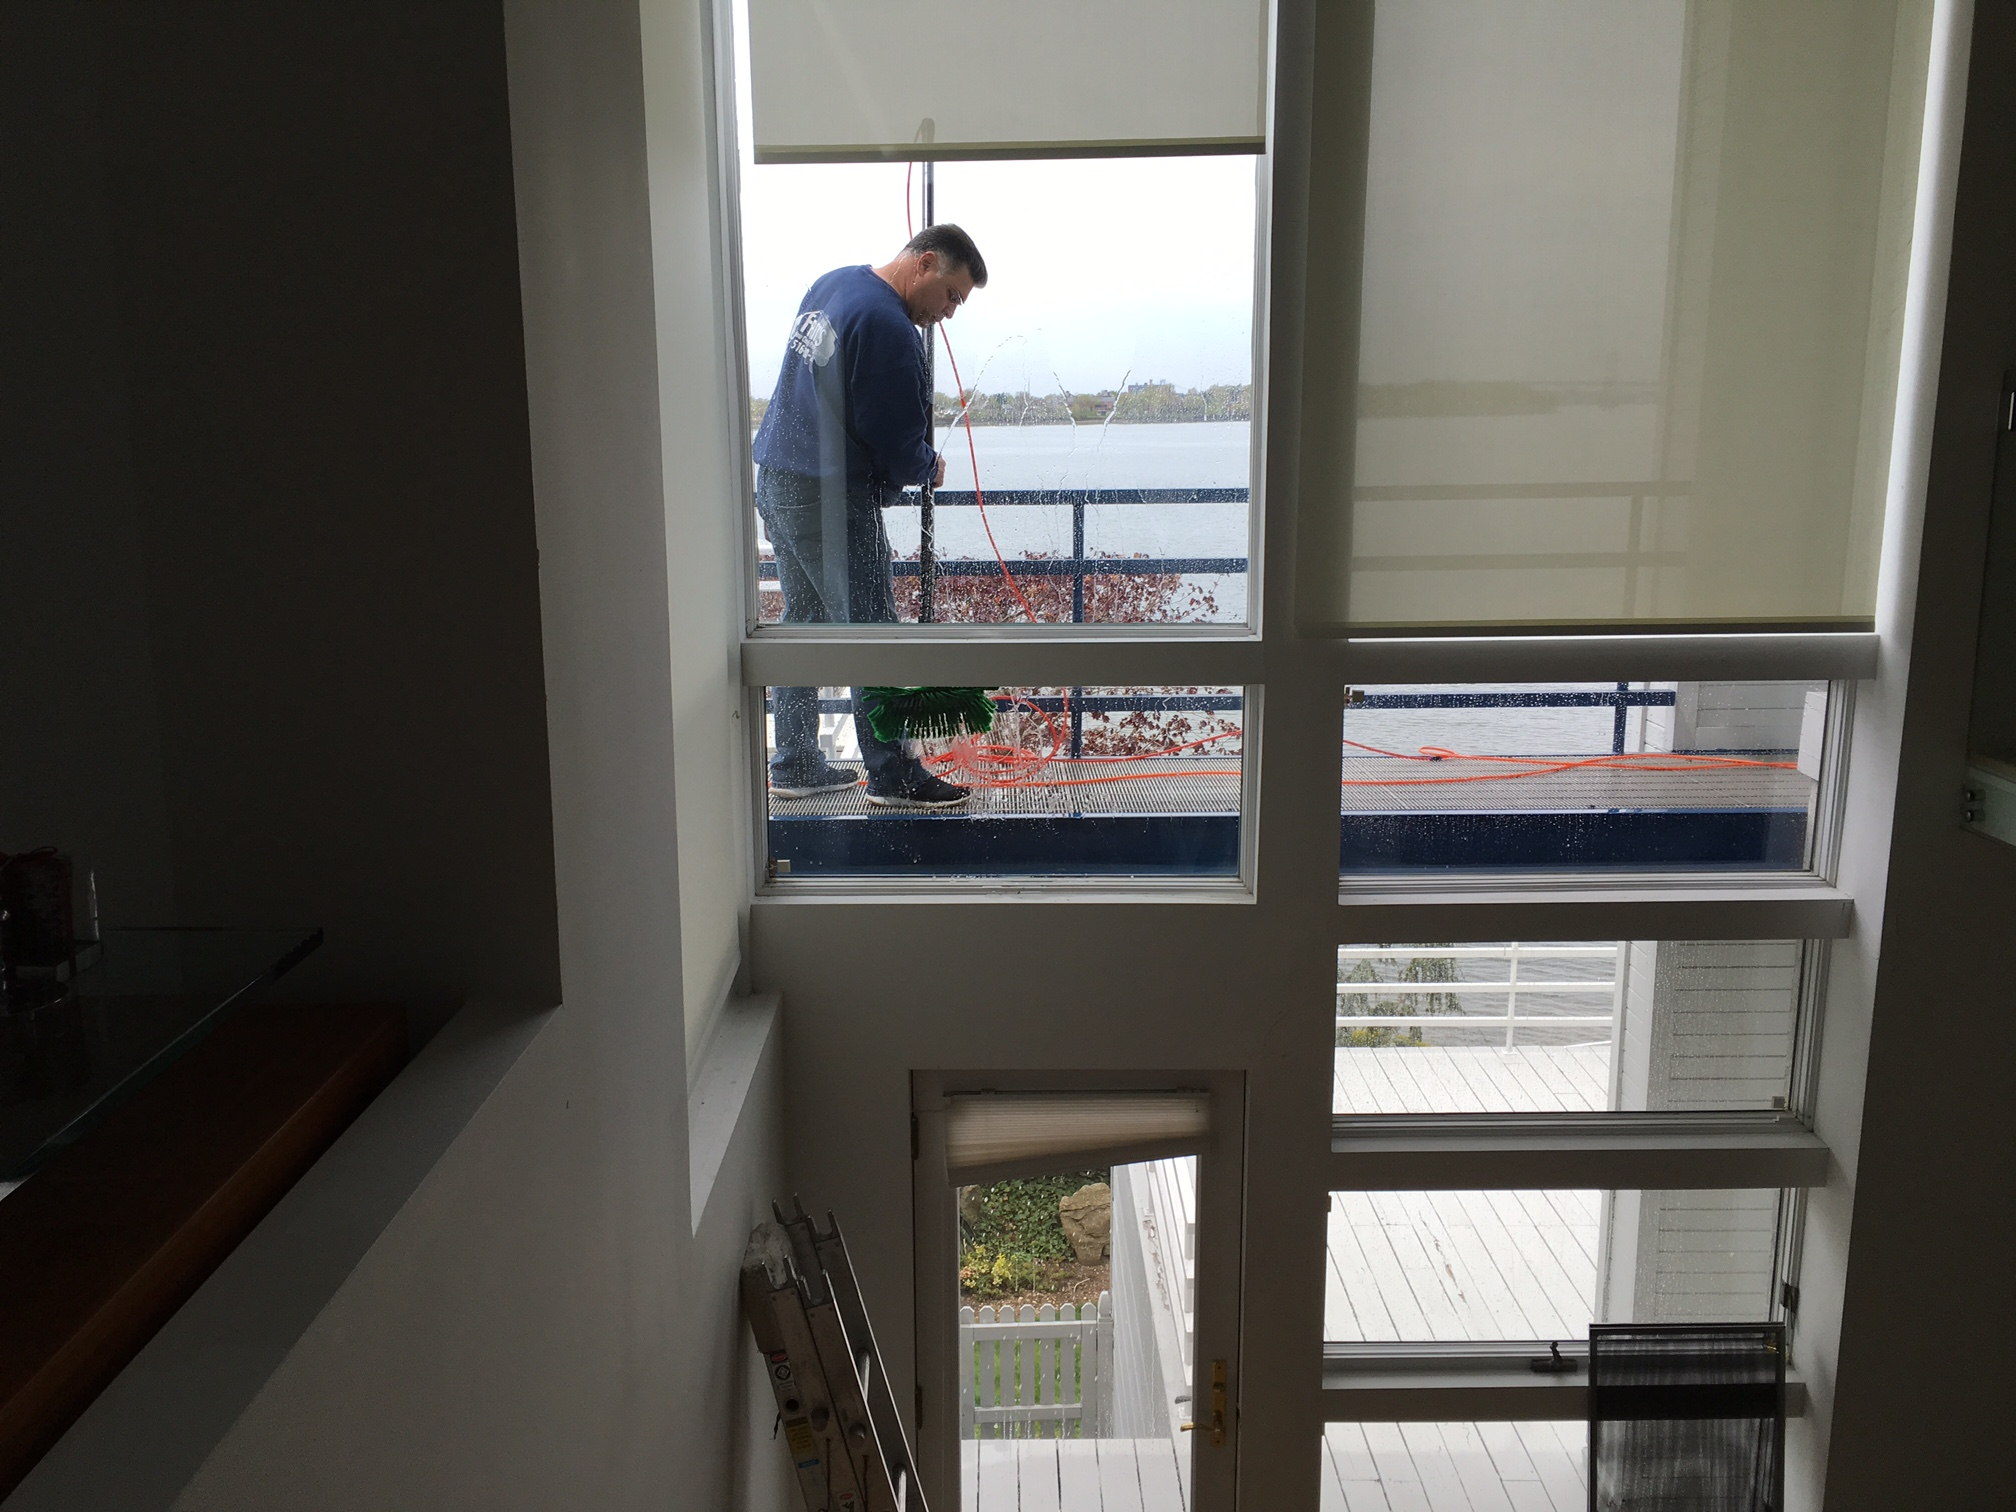 Get Prepared for the Festive Season, With Majestic Window Cleaning